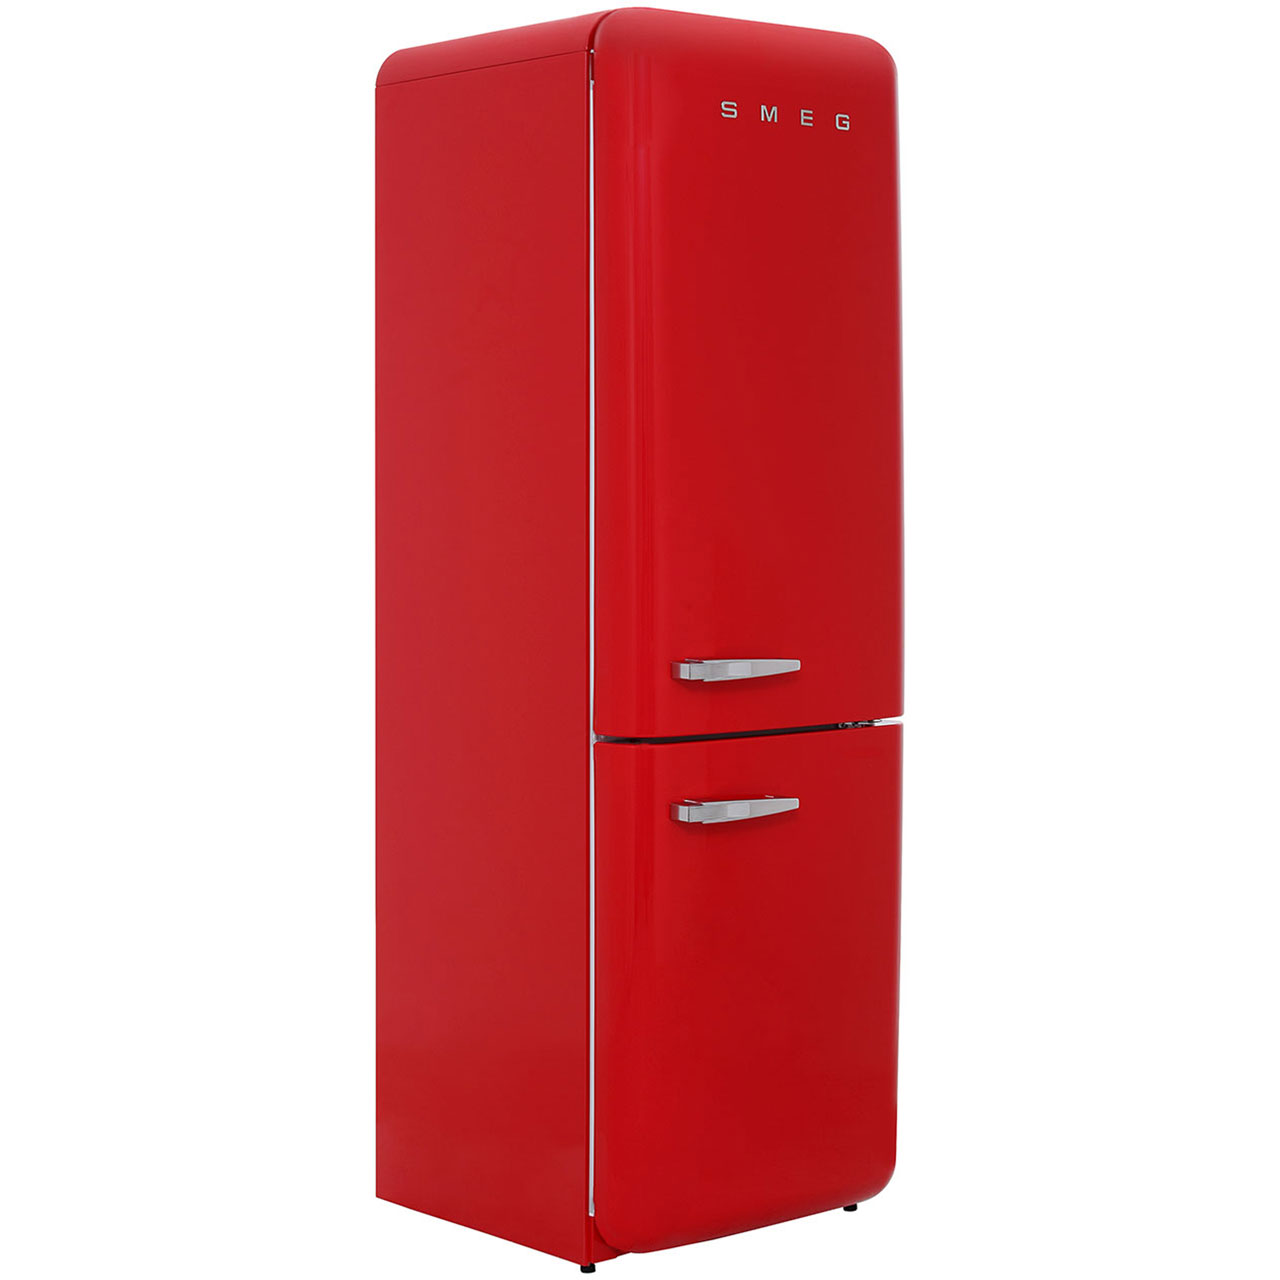 Smeg Right Hand Hinge FAB32RNR Free Standing Fridge Freezer Frost Free in Red